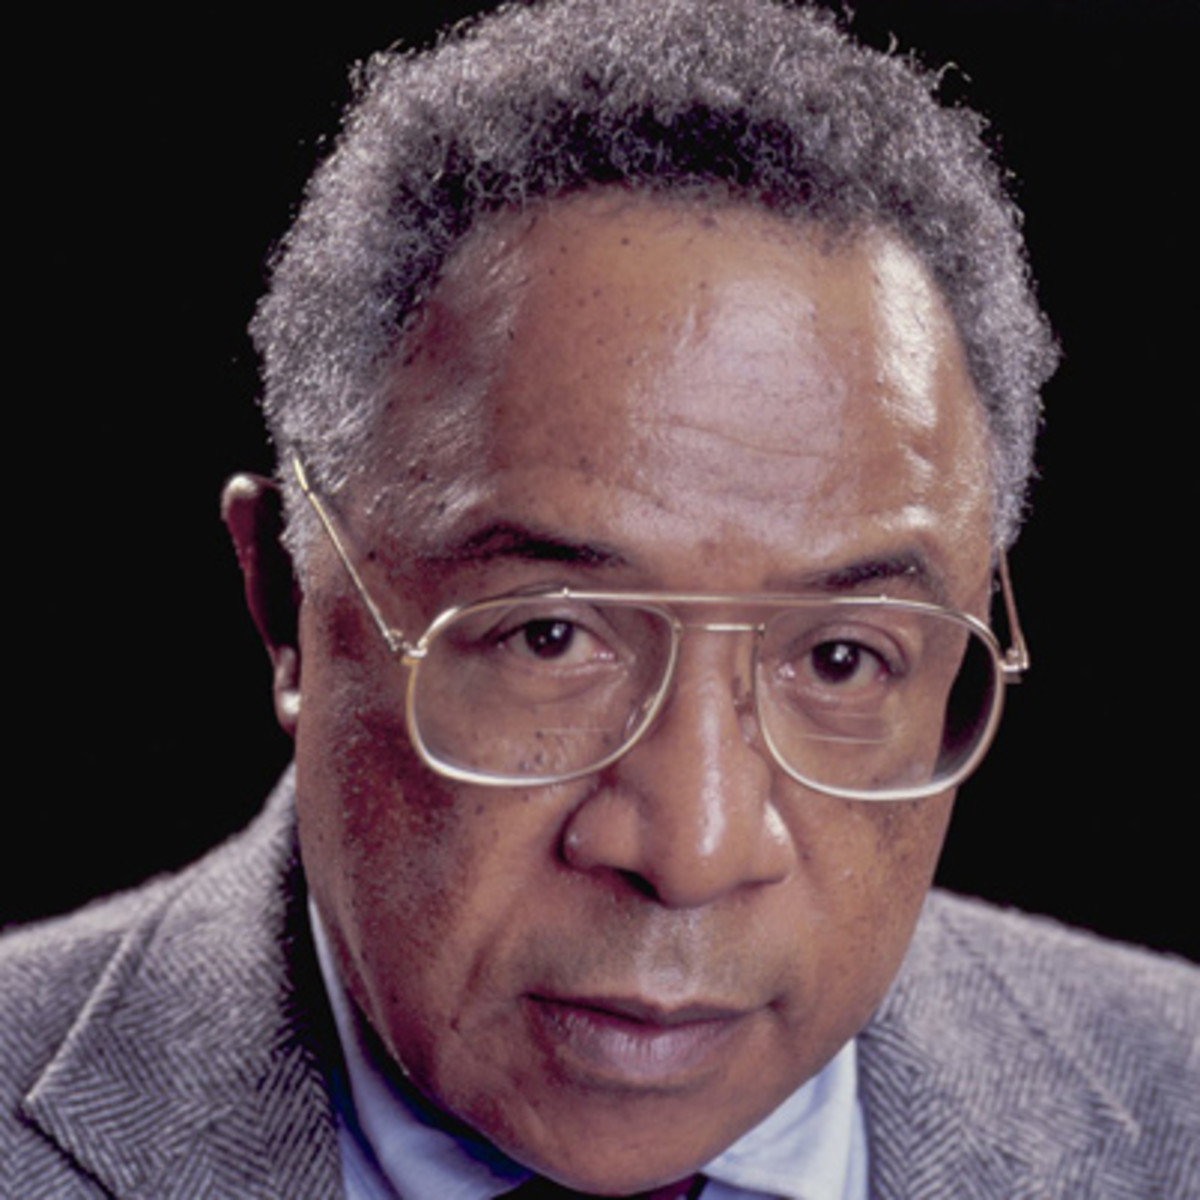 Alex Haley, author of Roots:The Saga of an American Family. (Photo: Mickey Adair/Getty Images)